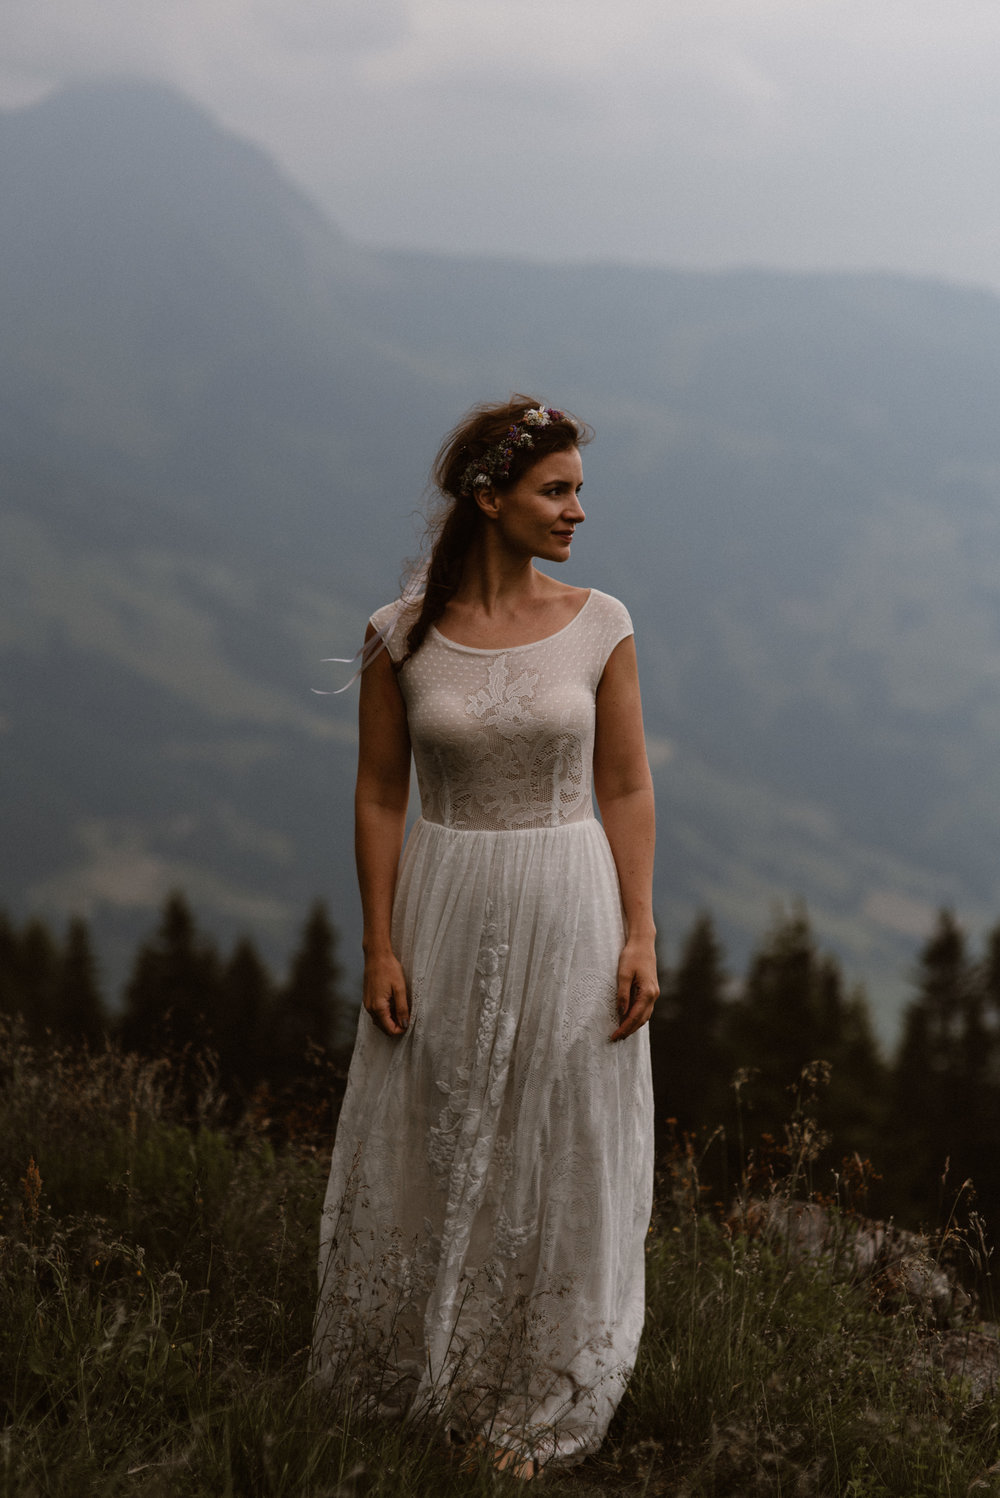 Married in the mountain photographer